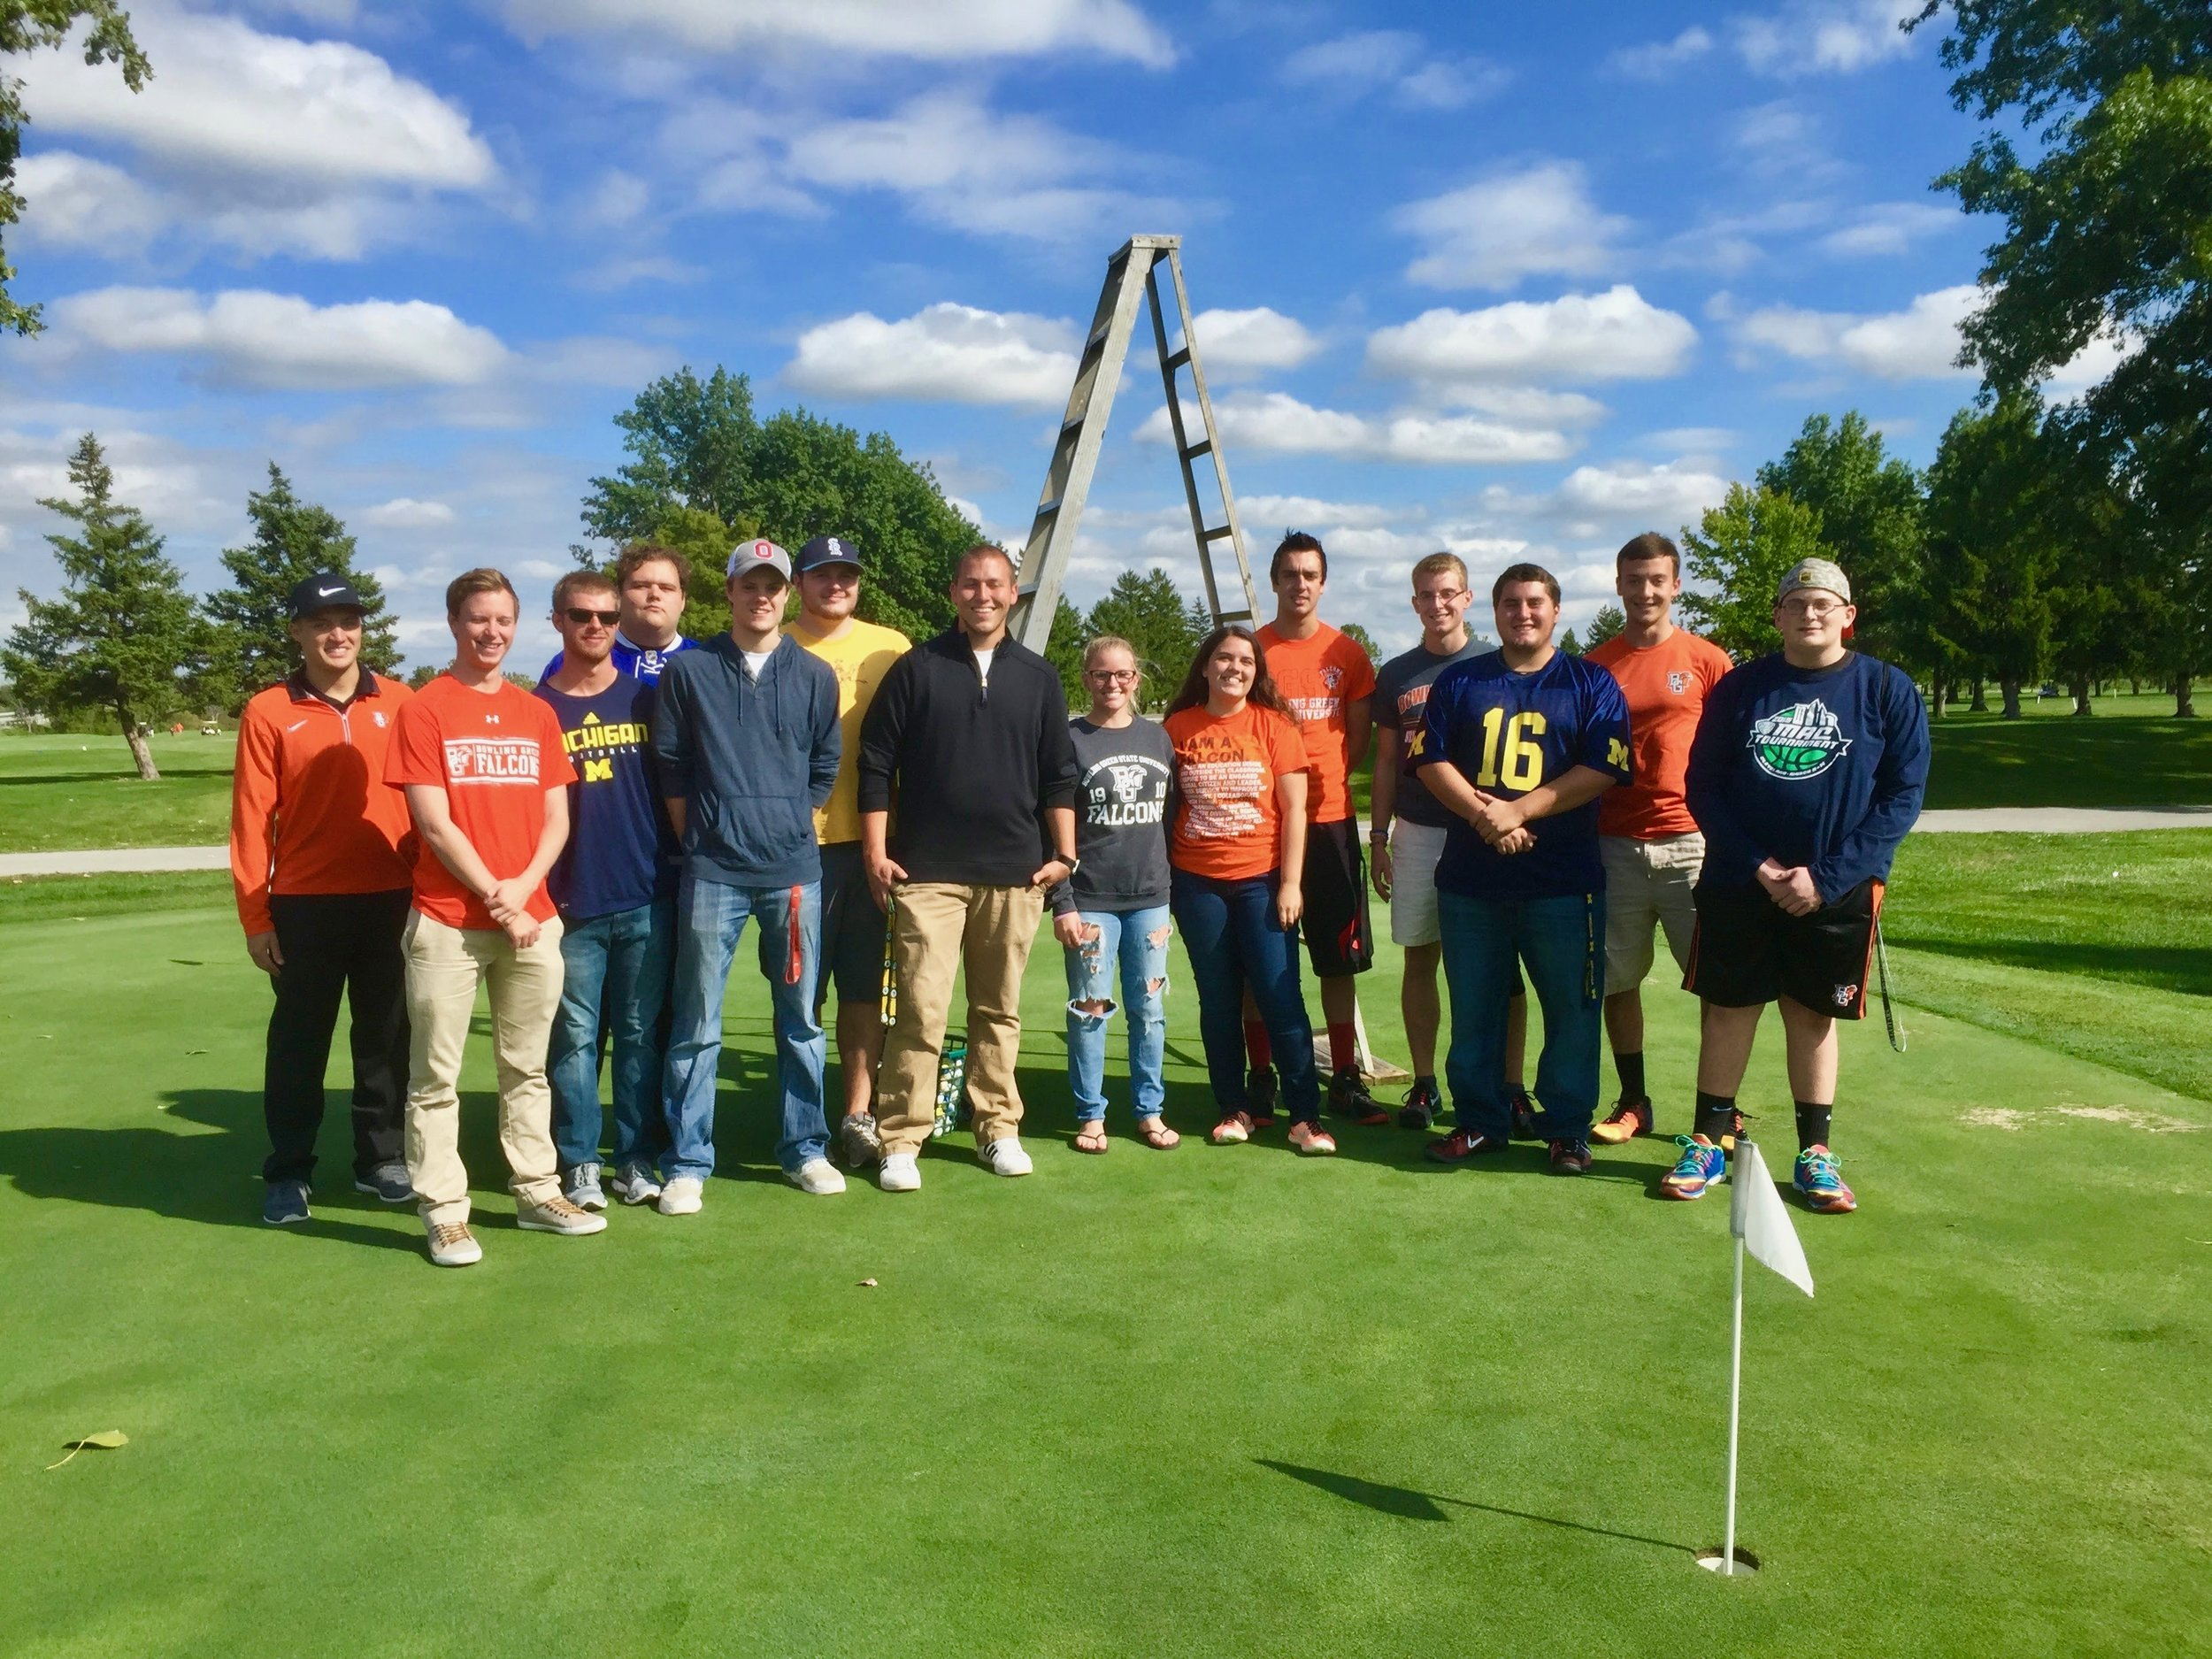 Director: Jordan Cason-White - The Event Planning Committee is tasked with creating and running events that are primarily geared towards organizational fund raising. The Golf Ball Drop (pictured left) has been an annual event that doubles as a 50/50 raffle. In 2017, the drop raised over $200 for SMA and a BGSU student won $209. Other events in 2018 included a 3v3 basketball tournament and a Buffalo Wild Wings fundraiser.Jordan can be contacted at jcasonw@bgsu.edu